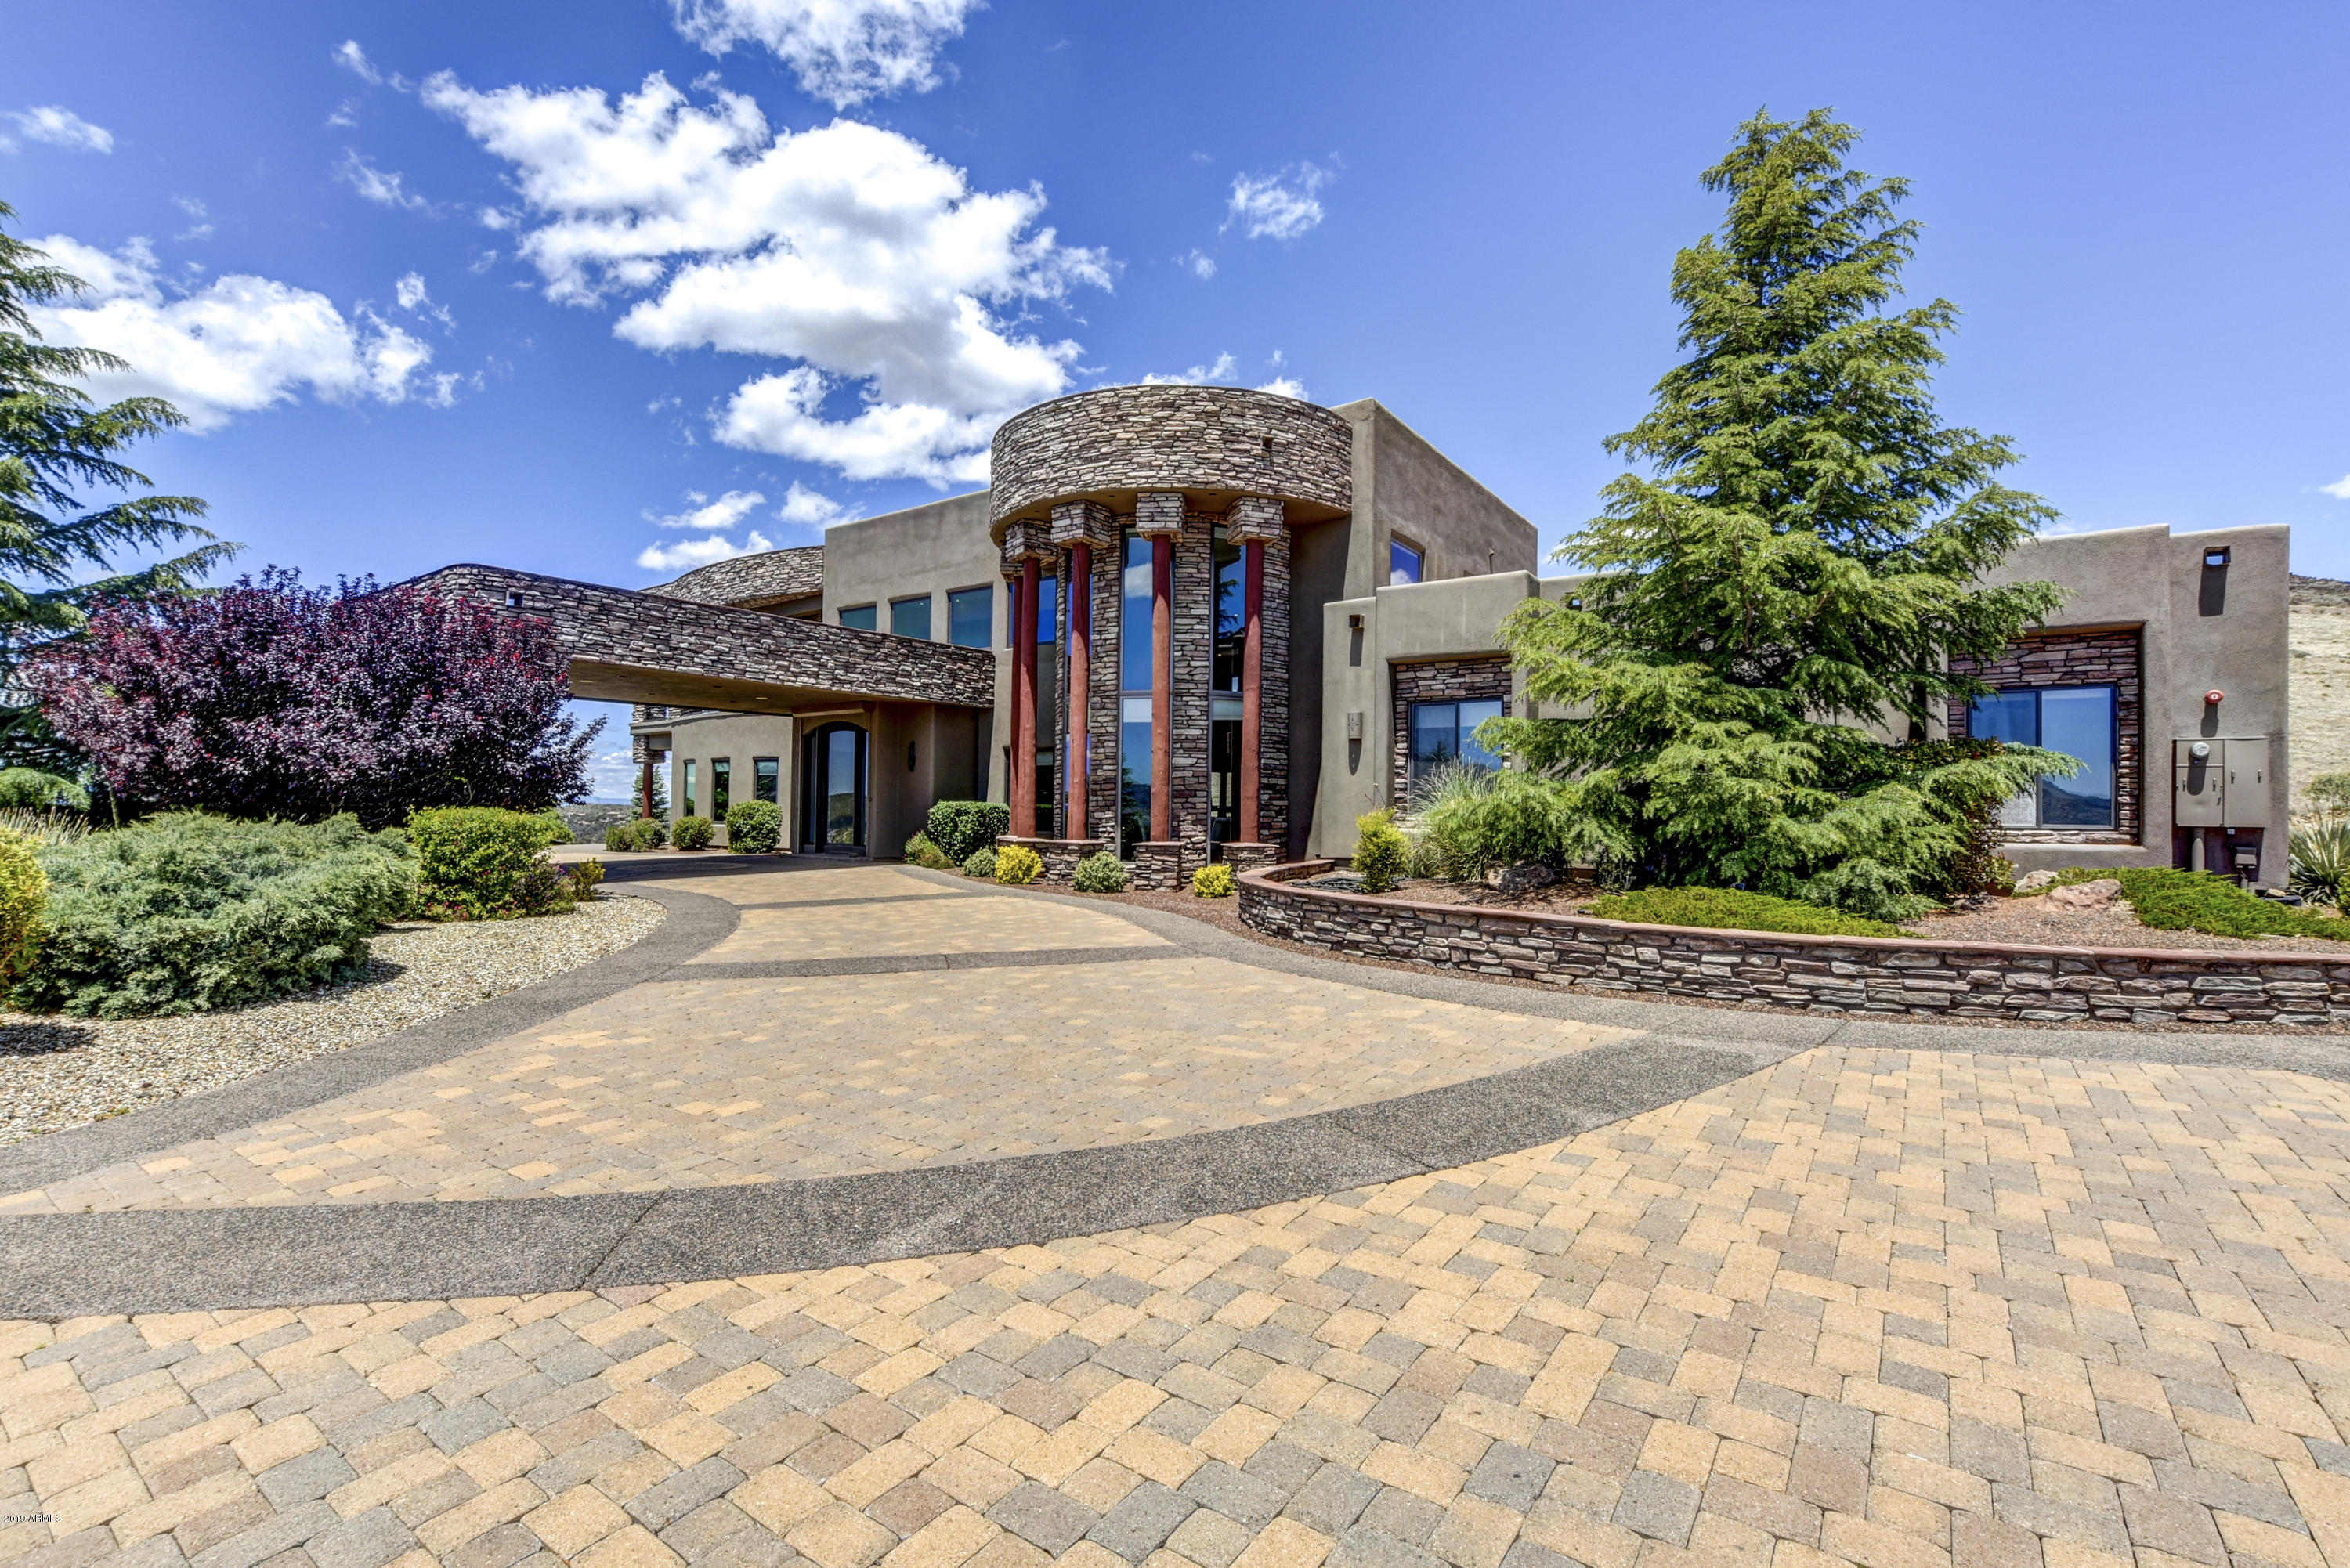 11600 N WILLIAMSON VALLEY RANCH Road, Prescott, Arizona